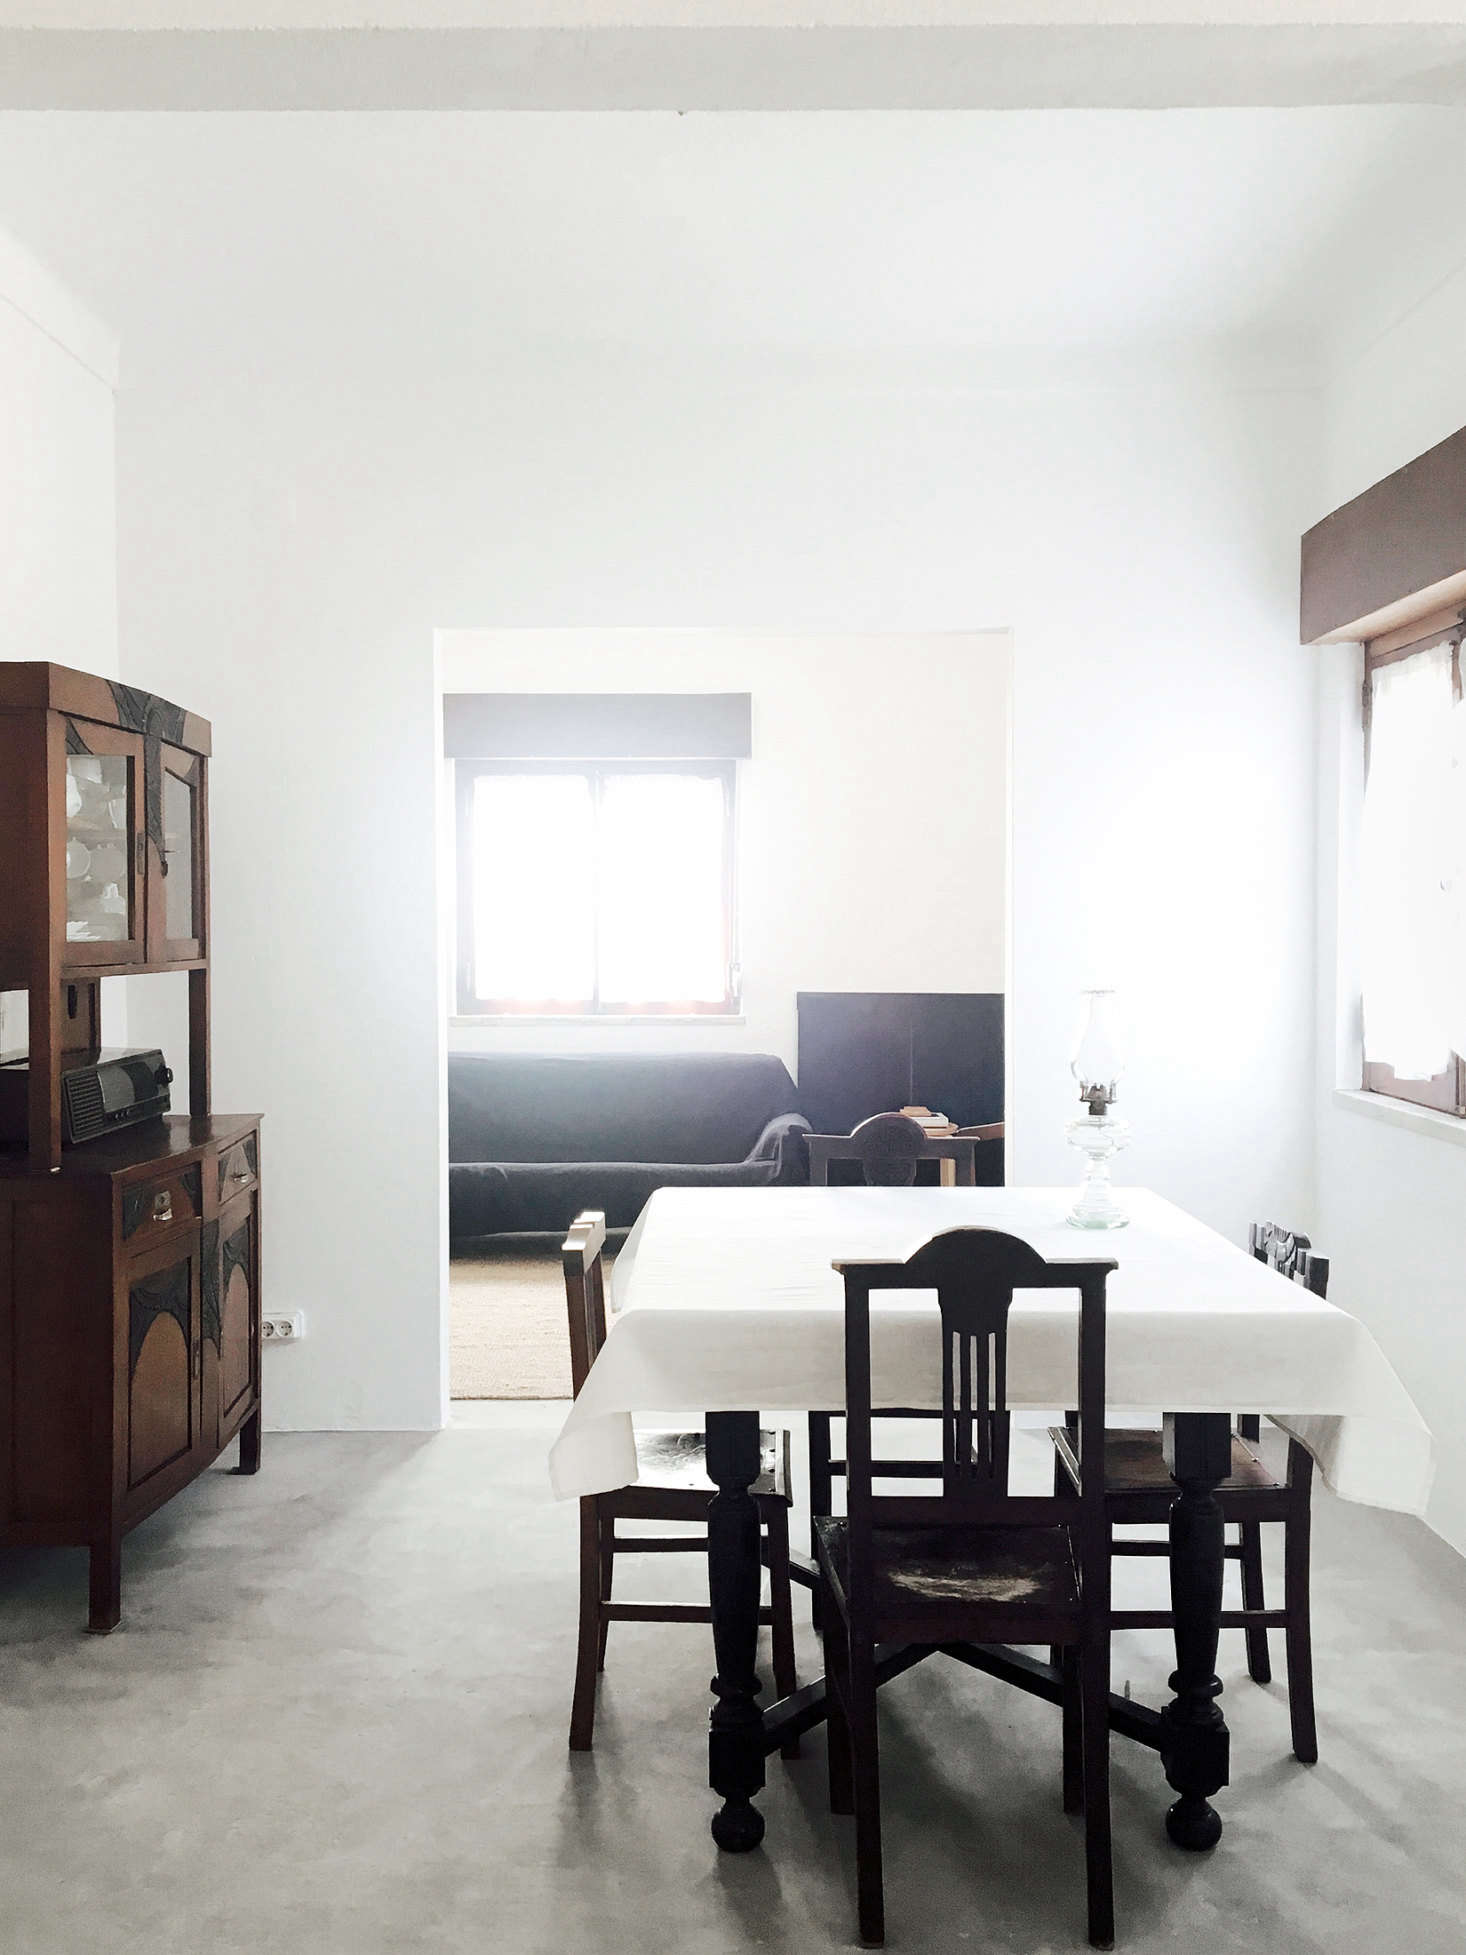 """The dining area and living room beyond. """"Doors and windows were preserved with their original varnish finishing and hardware from the 1970s,"""" Bento says. All of the furniture was existing in the house, including the wood hutch and dining chairs, both """"believed to be from the 1960s,"""" Bento says."""